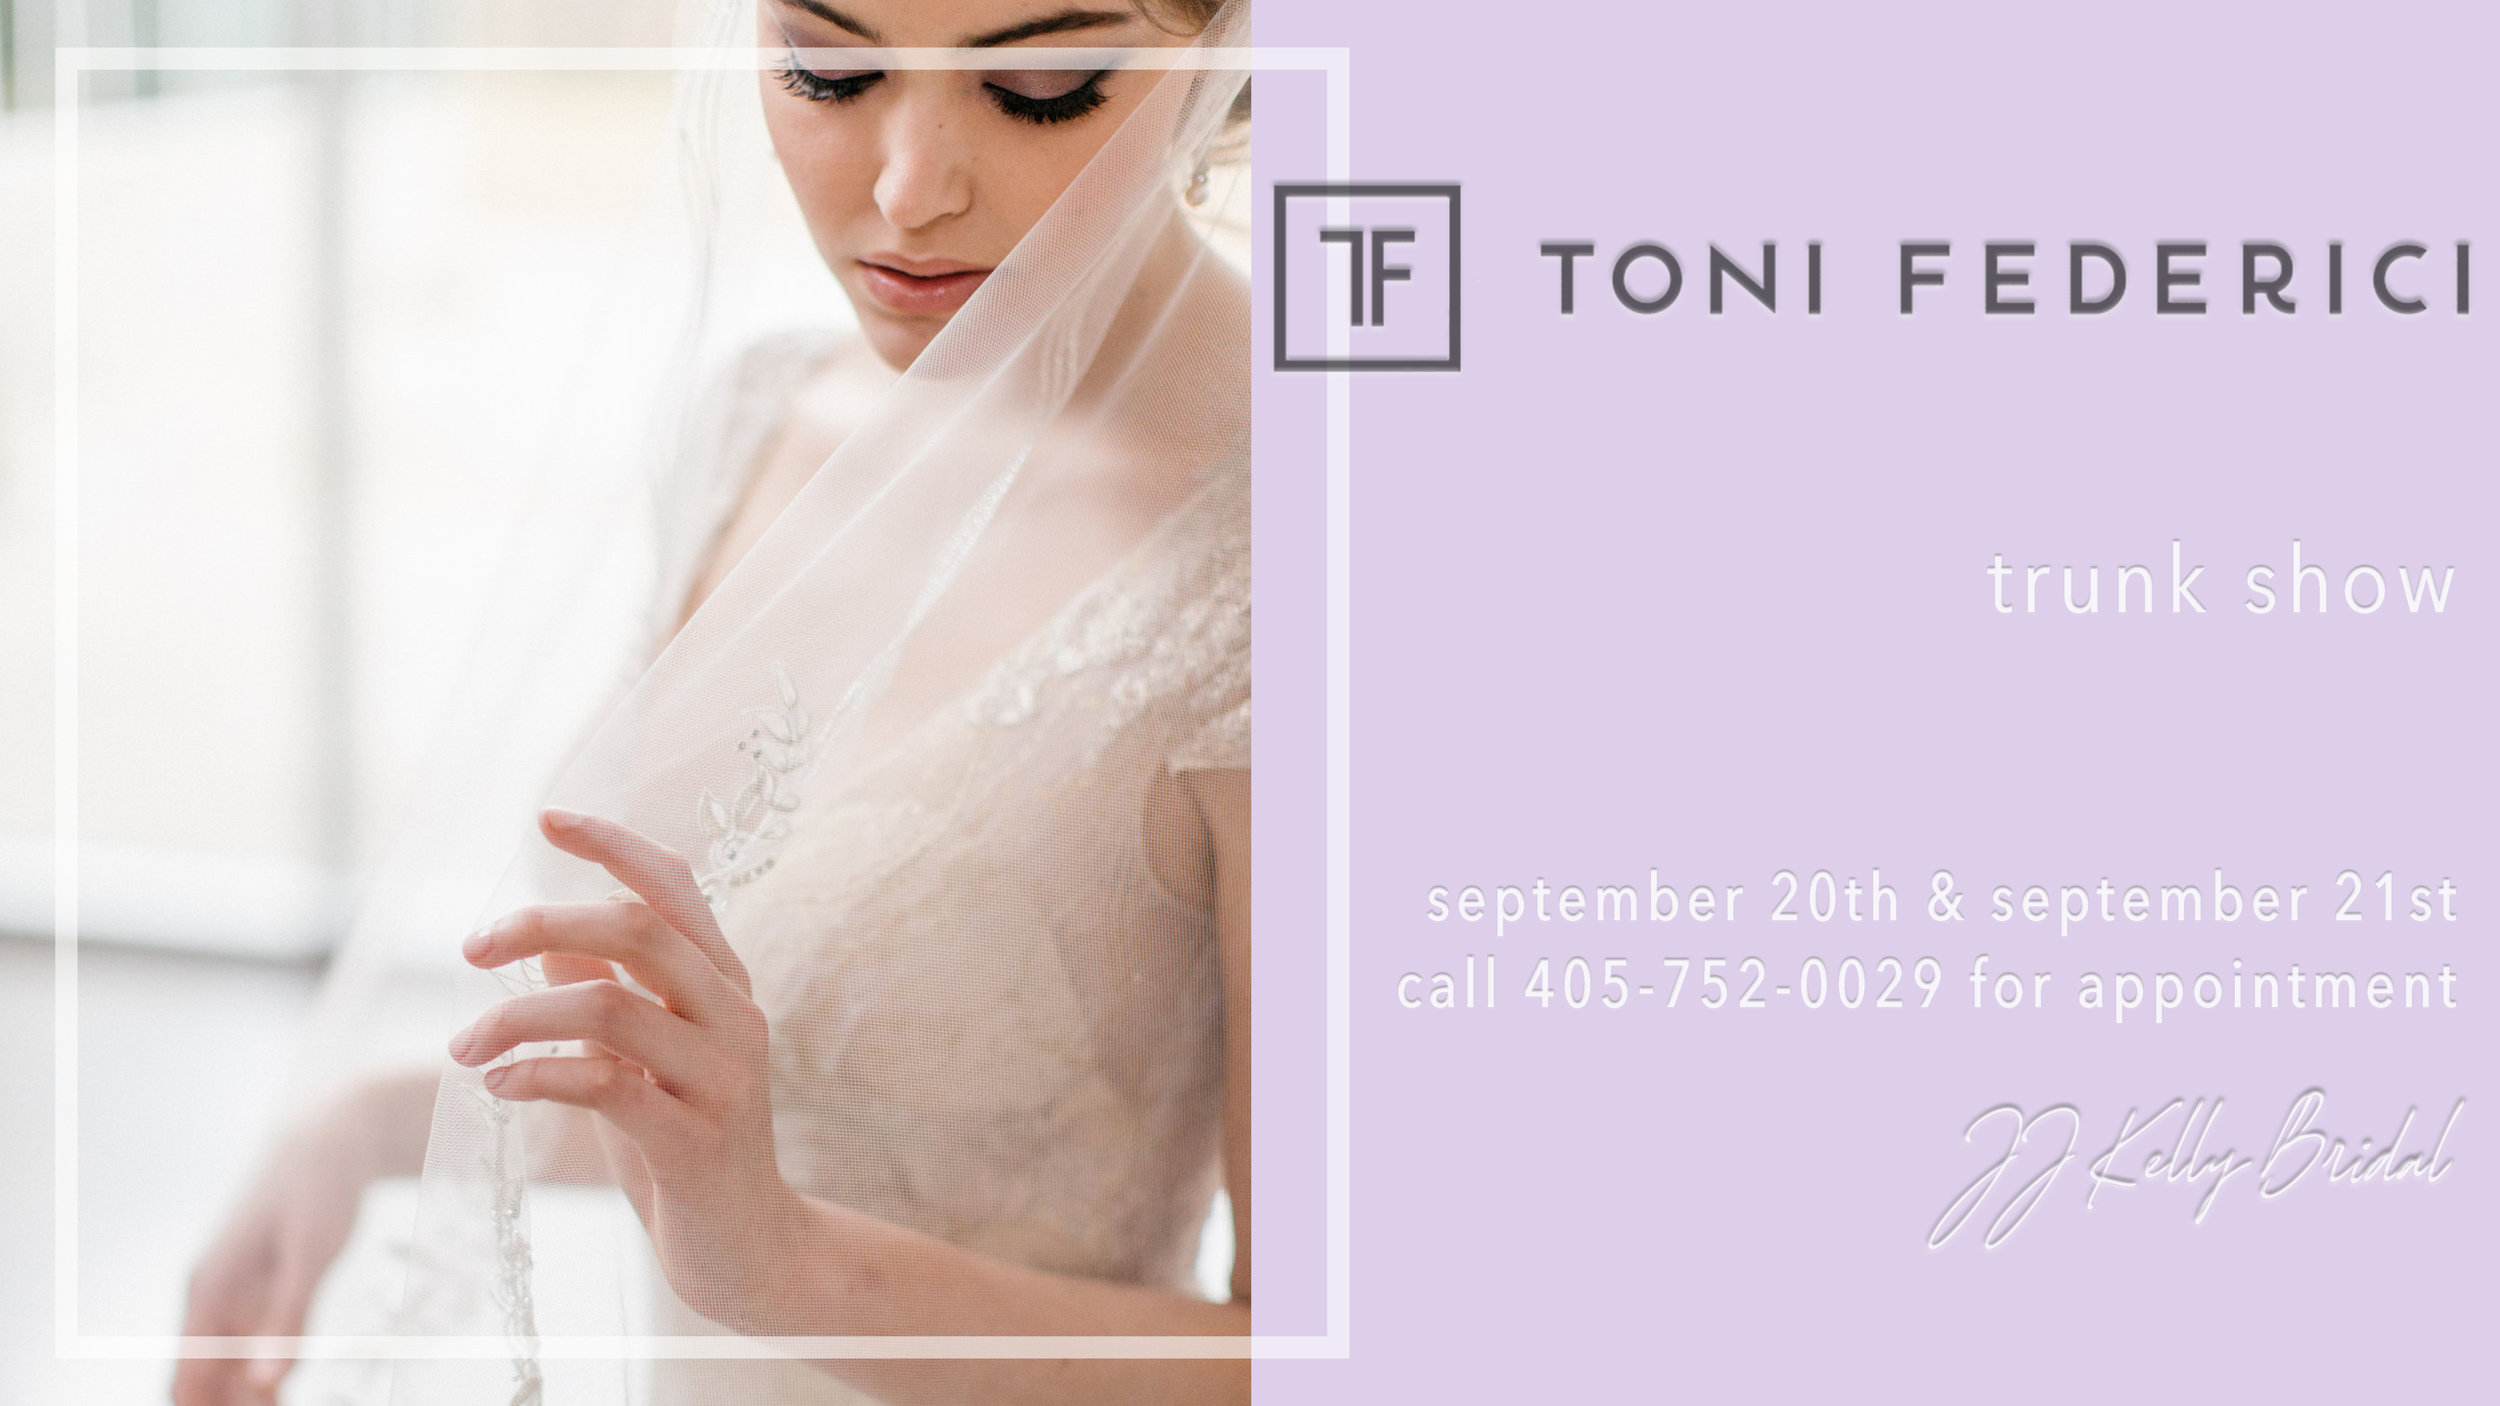 *Brides must have purchased their gowns from JJ Kelly Bridal to make appointment  * $40 event fee which goes toward the purchase of her veil if purchased during the show.